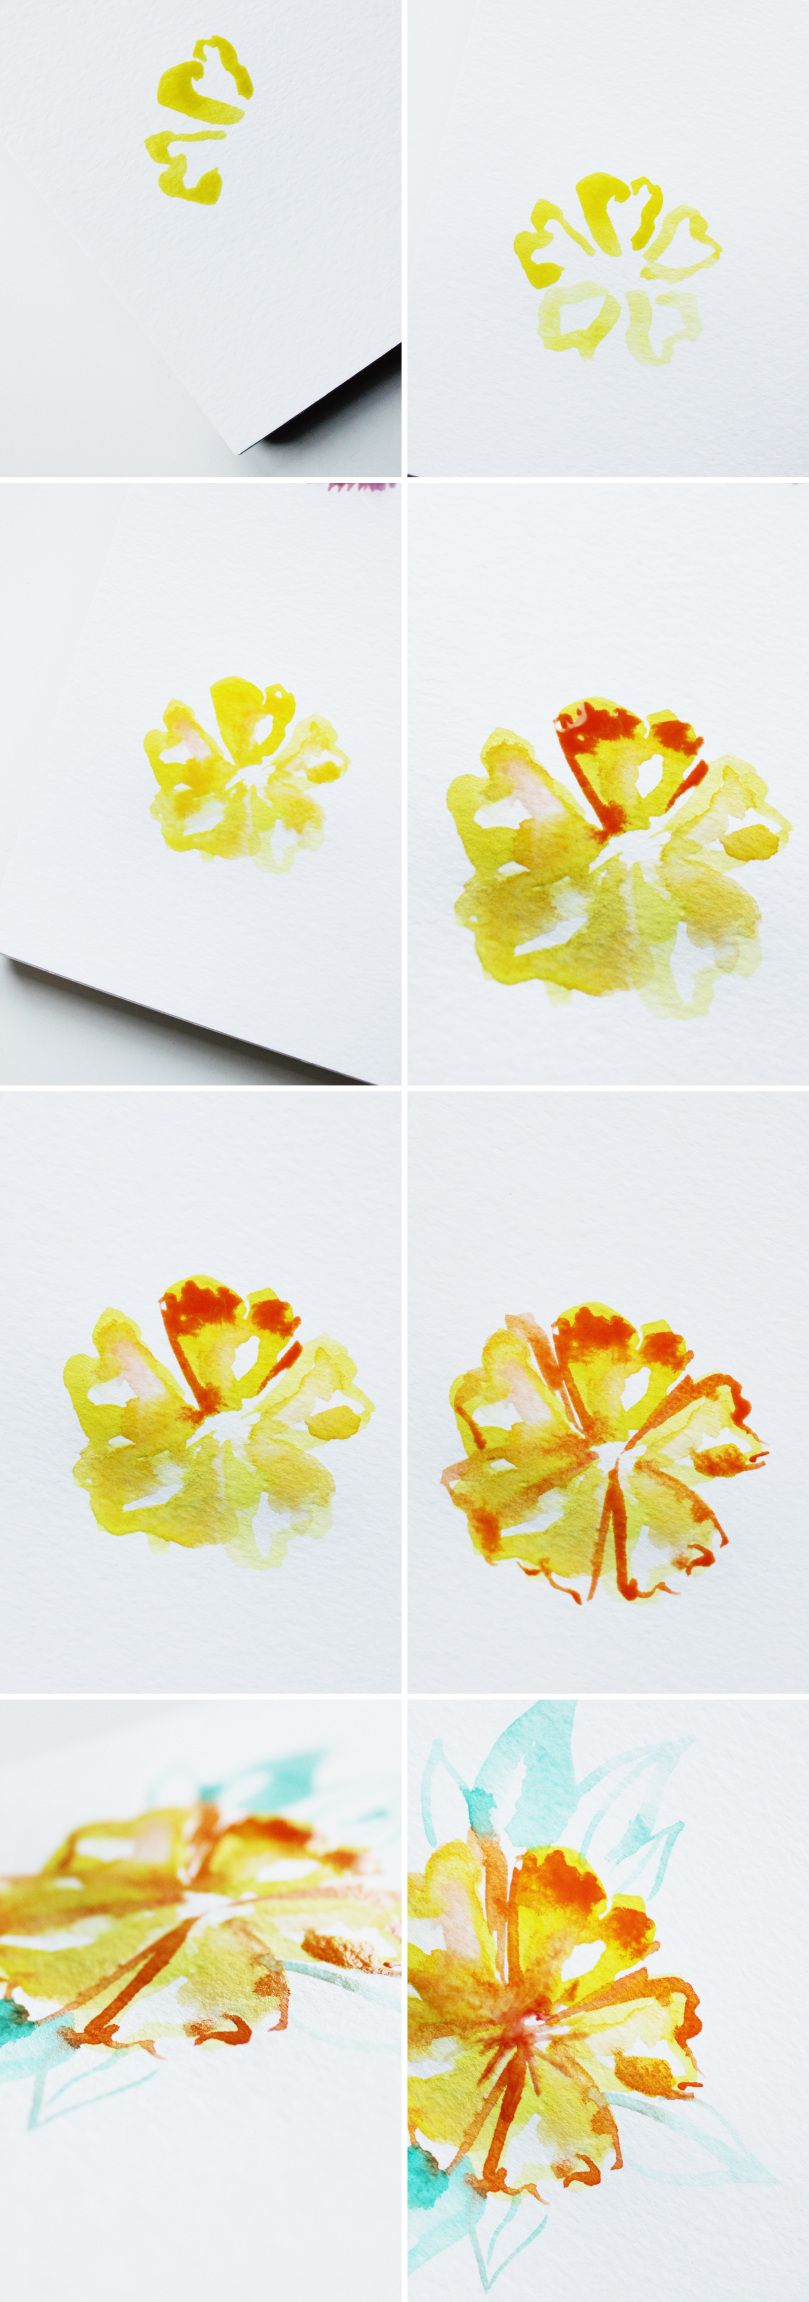 Tutorial Today I Decided To Share A Step By Step Tutorial Of A